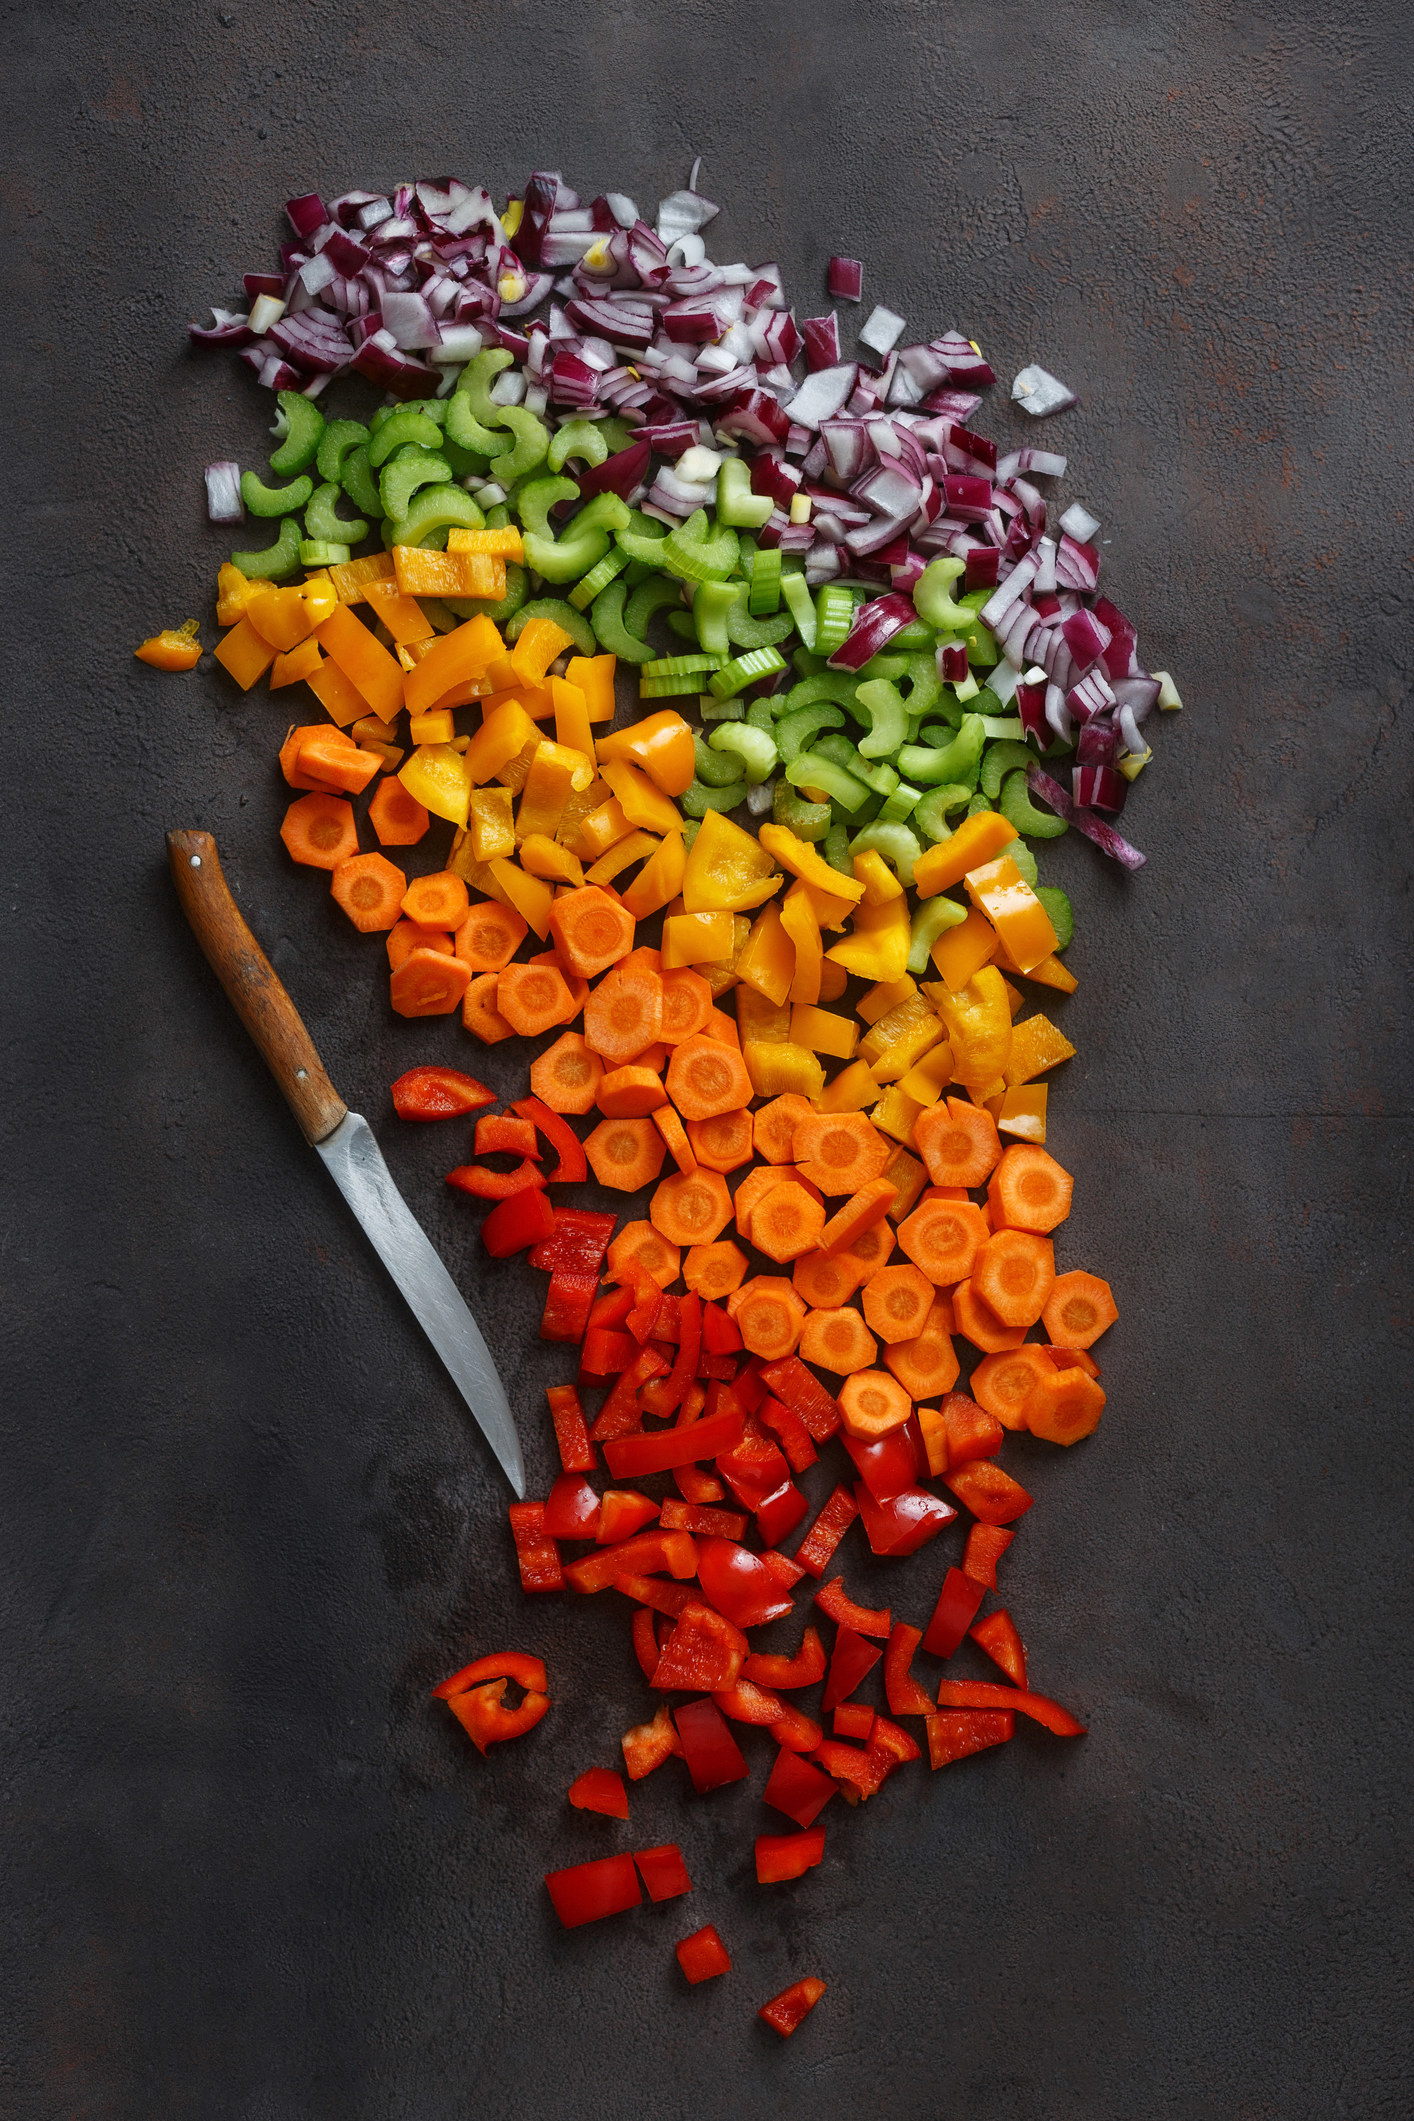 Evenly cut carrots, peppers, onions, and cucumbers